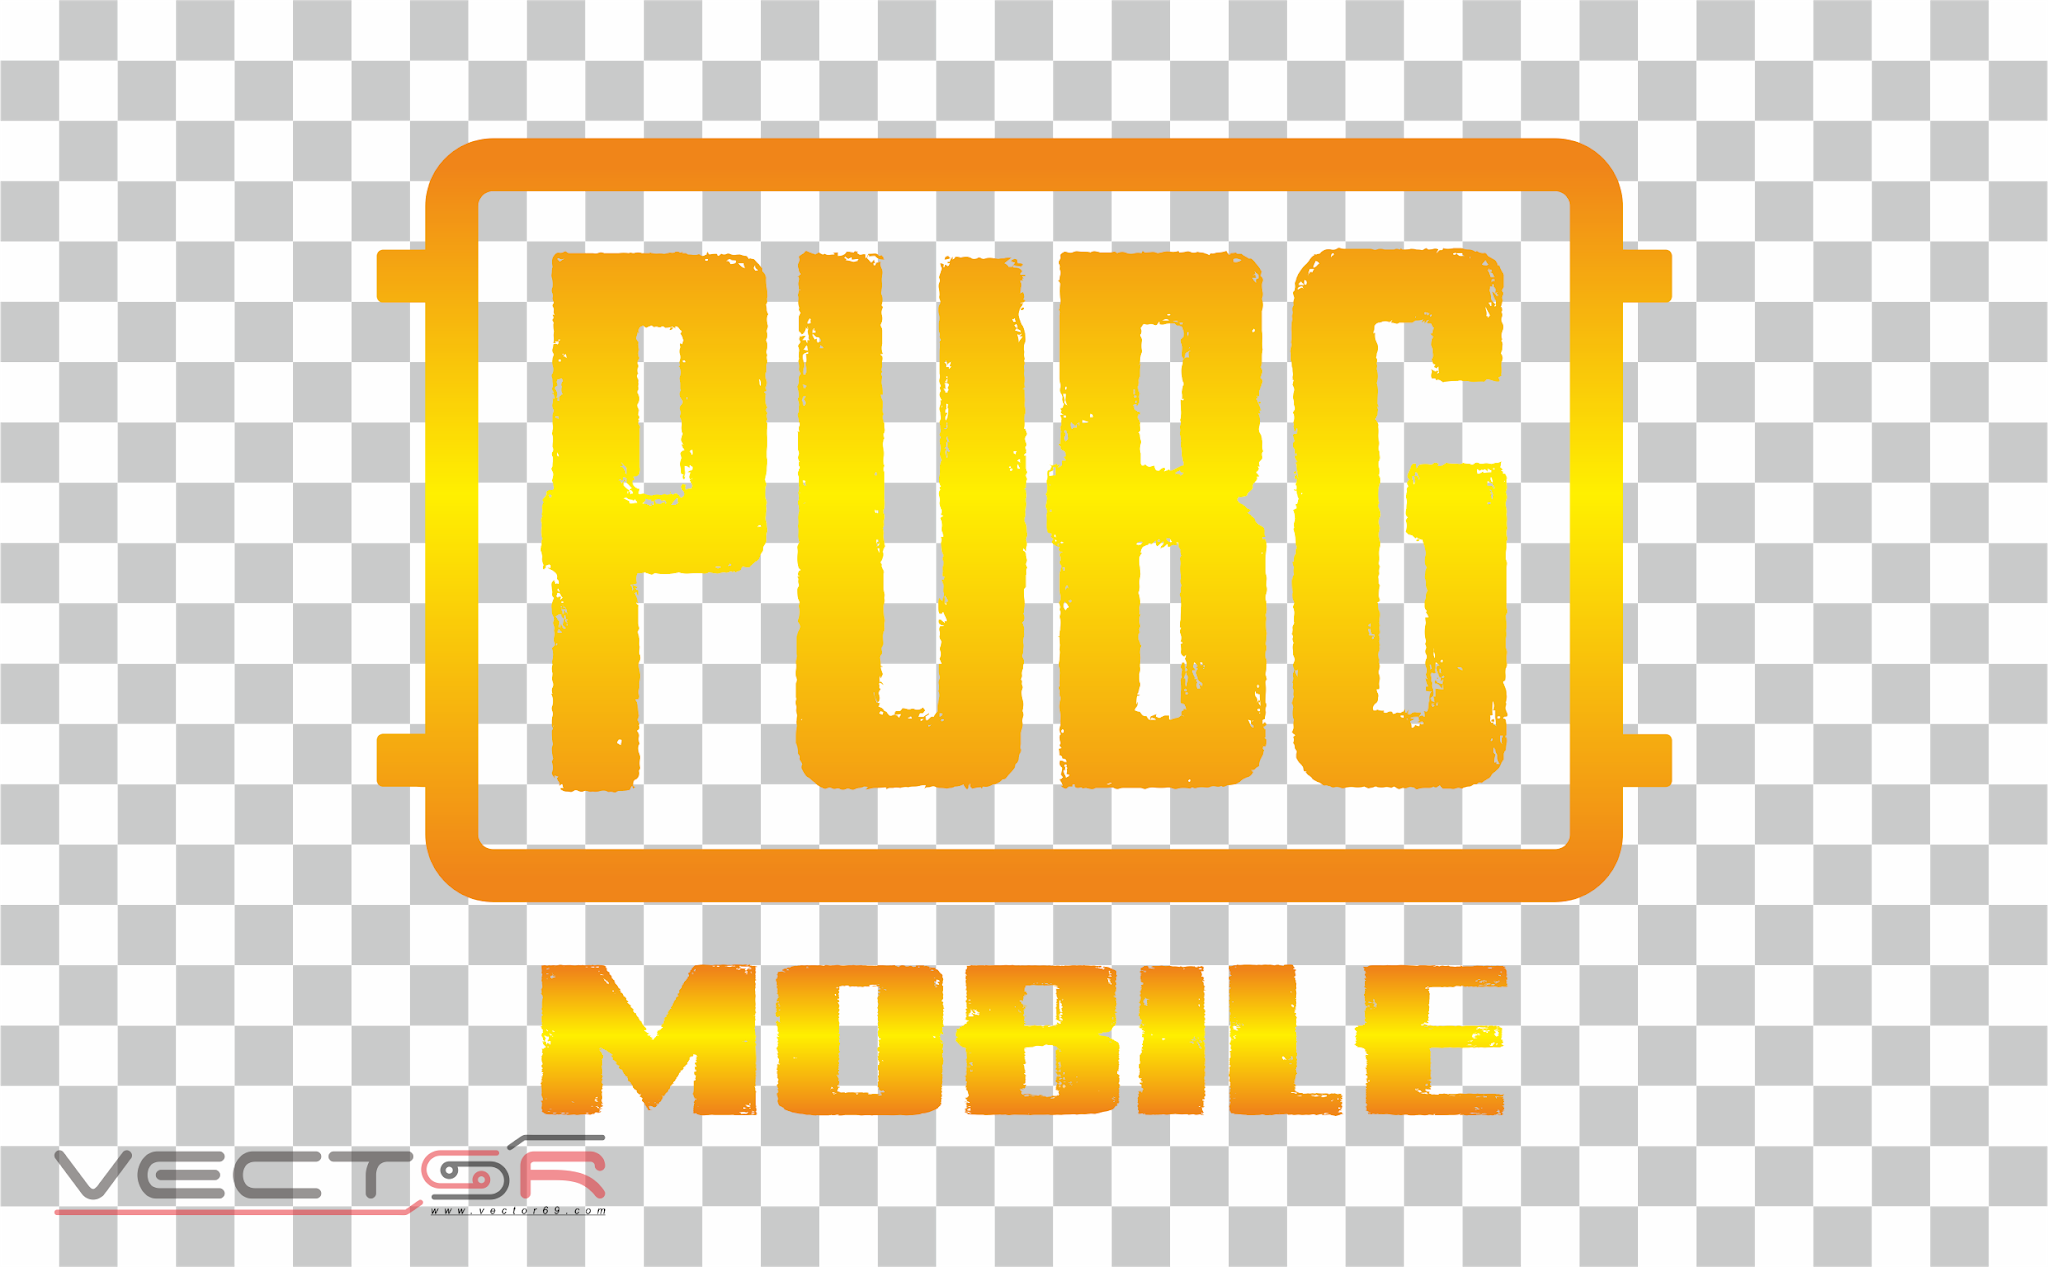 PUBG Mobile Logo - Download Vector File PNG (Portable Network Graphics)